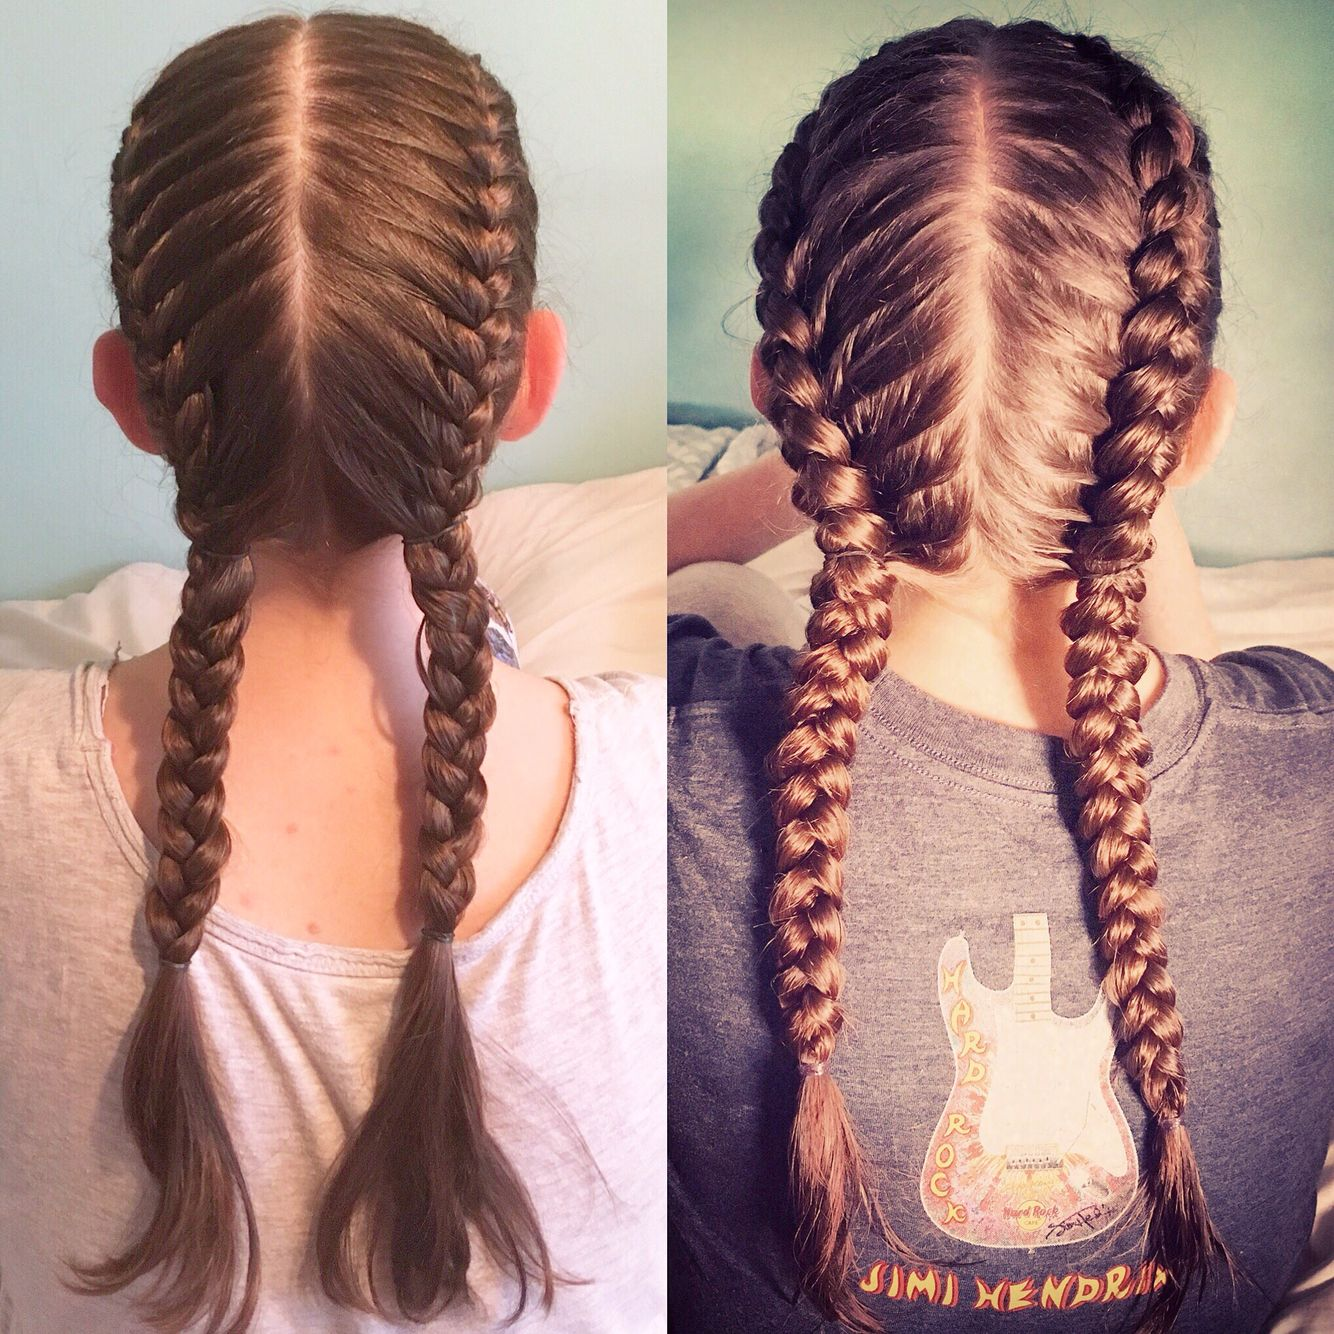 French Vs Dutch Braids With Images Hair Styles Natural Hair